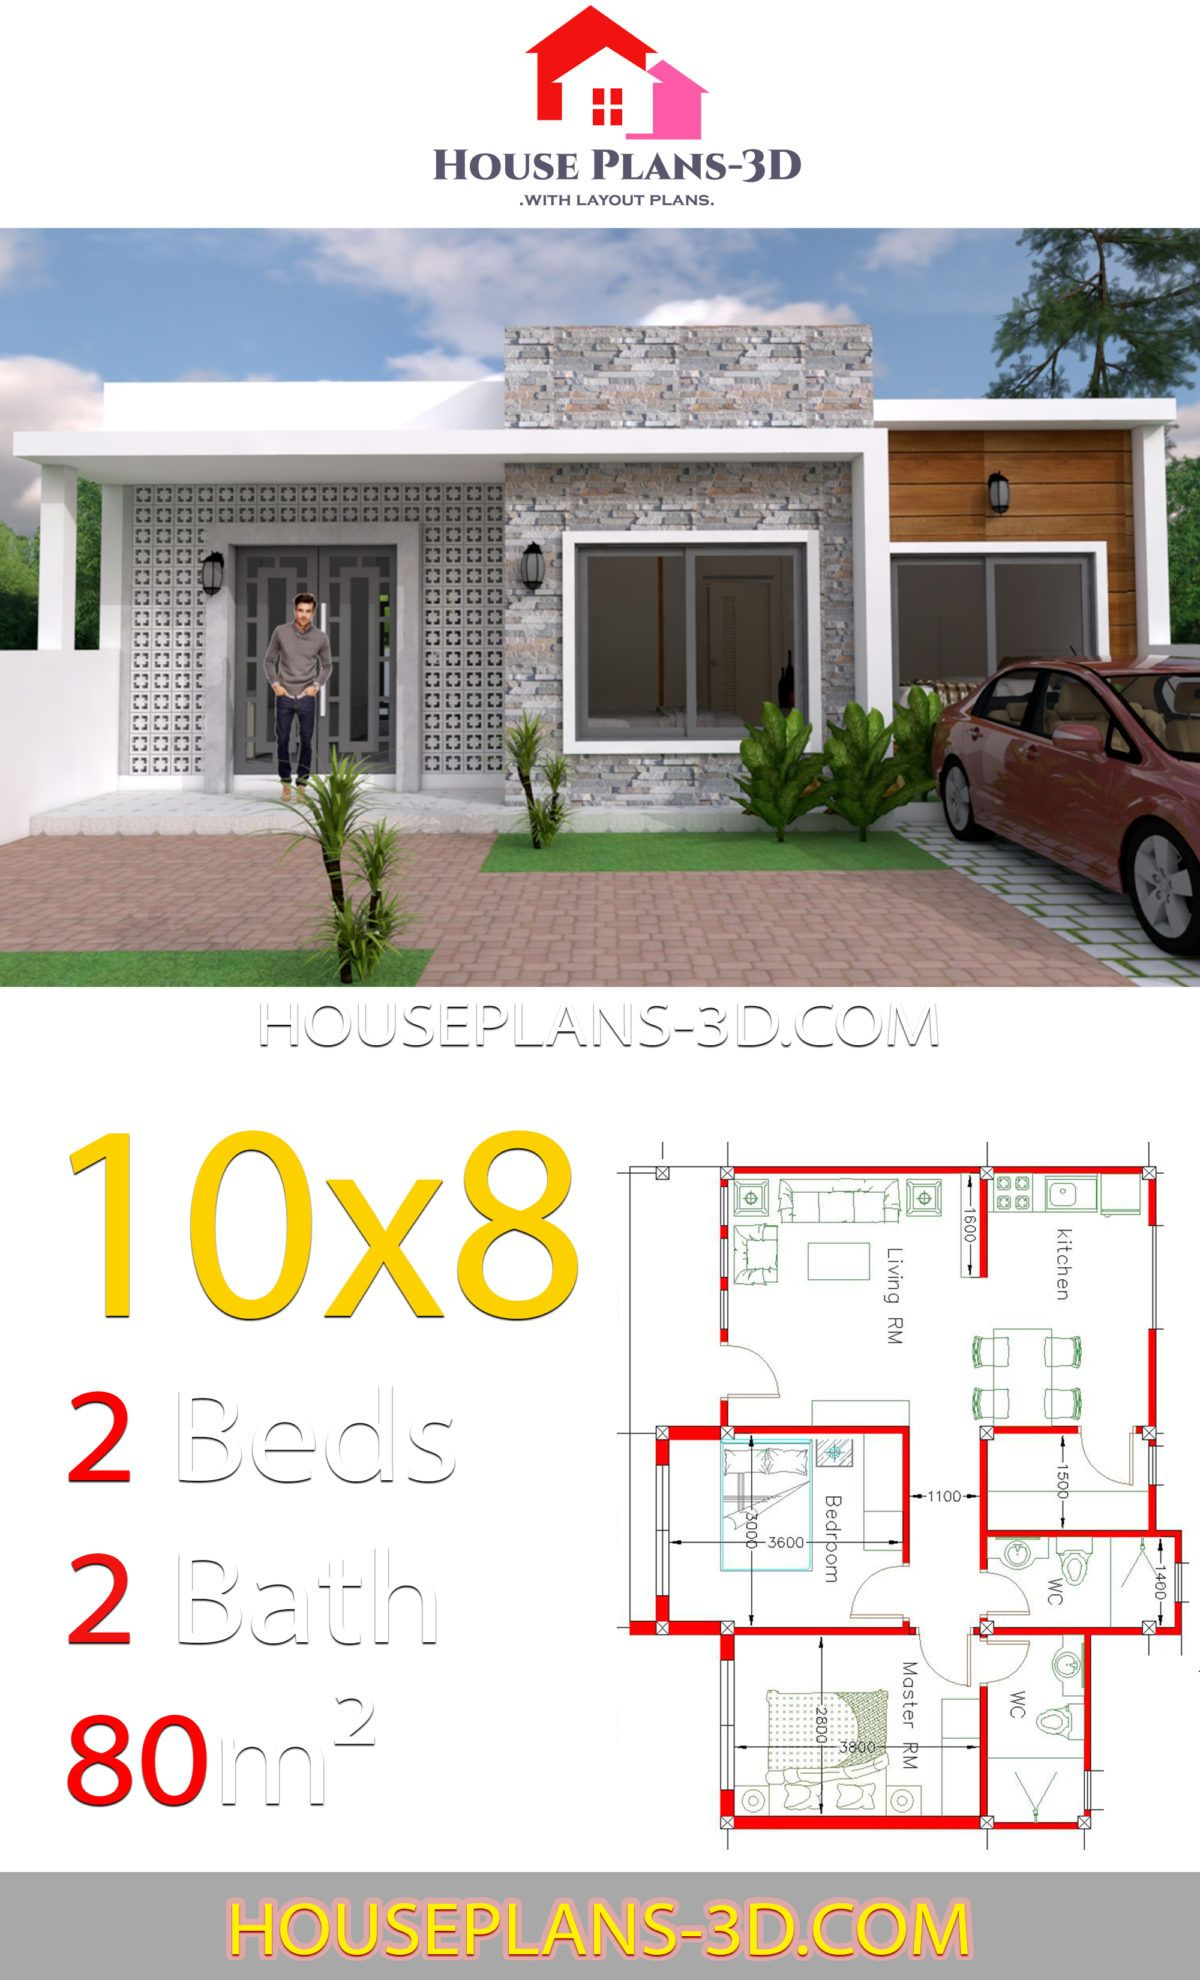 House Design 10x8 With 2 Bedrooms House Plans 3d Fachadas De Casas Terreas Projectos De Casas Casas De Um Andar